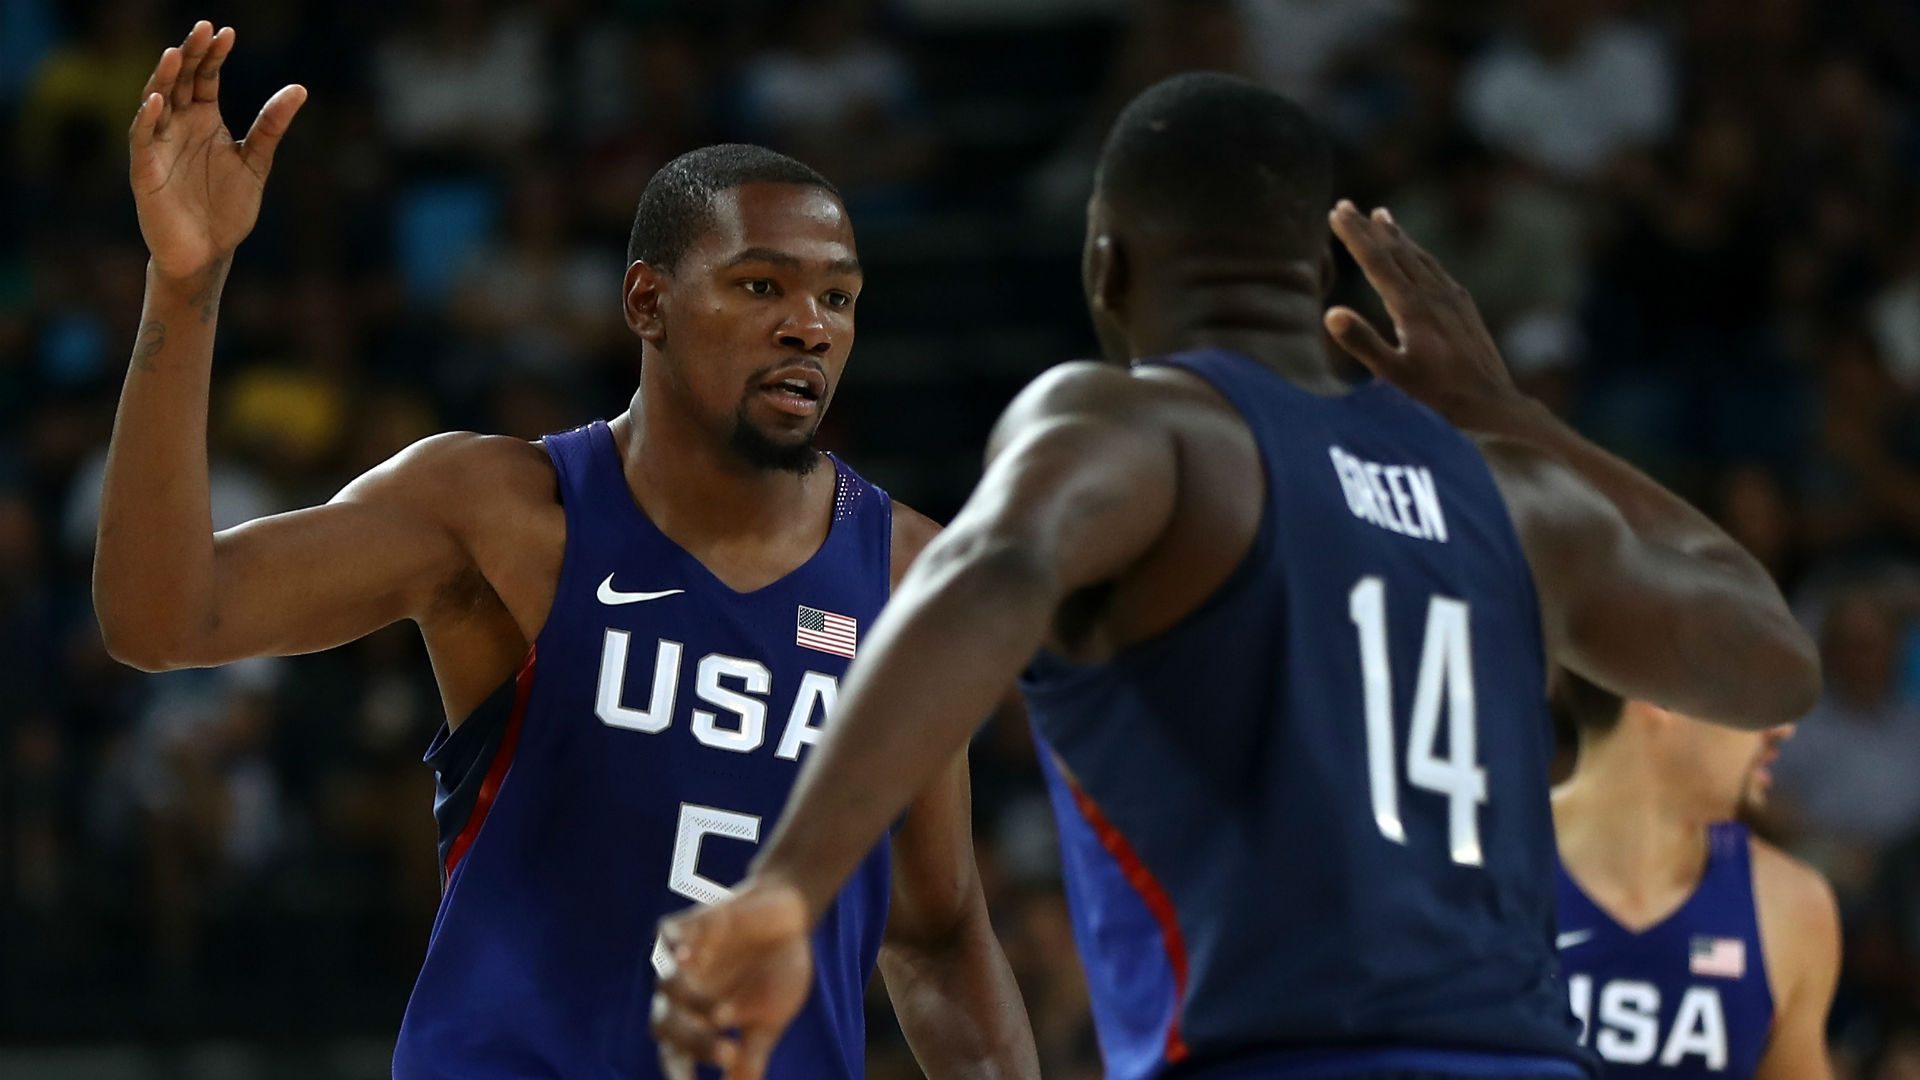 Green-durant-082816-gettyjpg_1ip6tle8uh2mk1d2uy3odkmrso